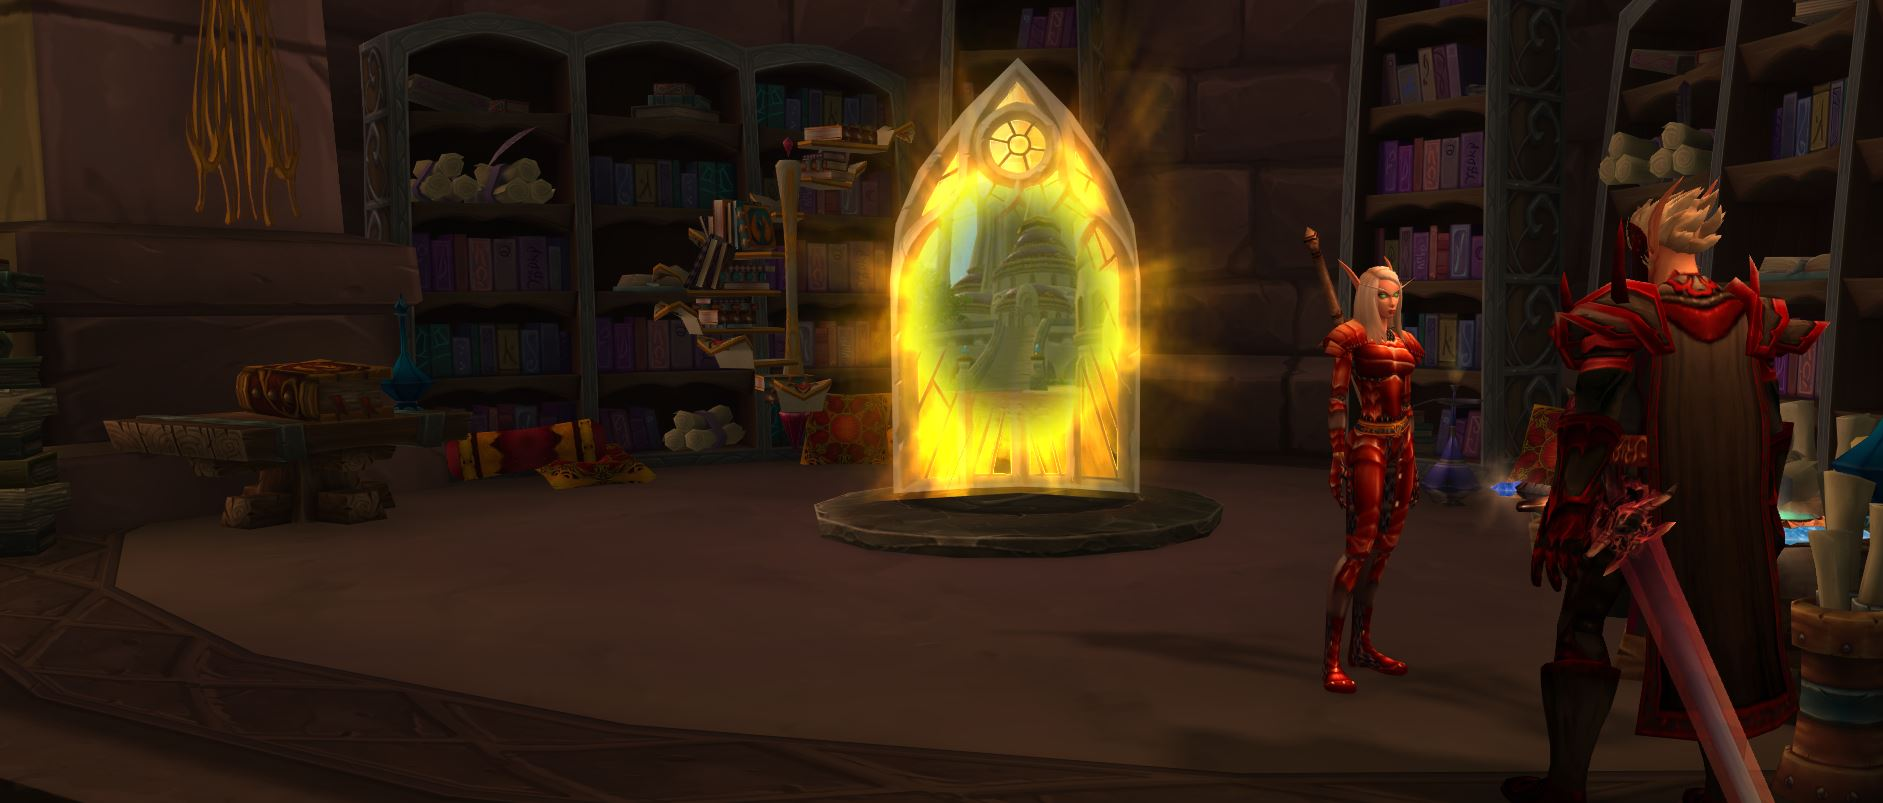 tbc classic pve protection paladin tank gear & best in slot (bis) burning crusade classic